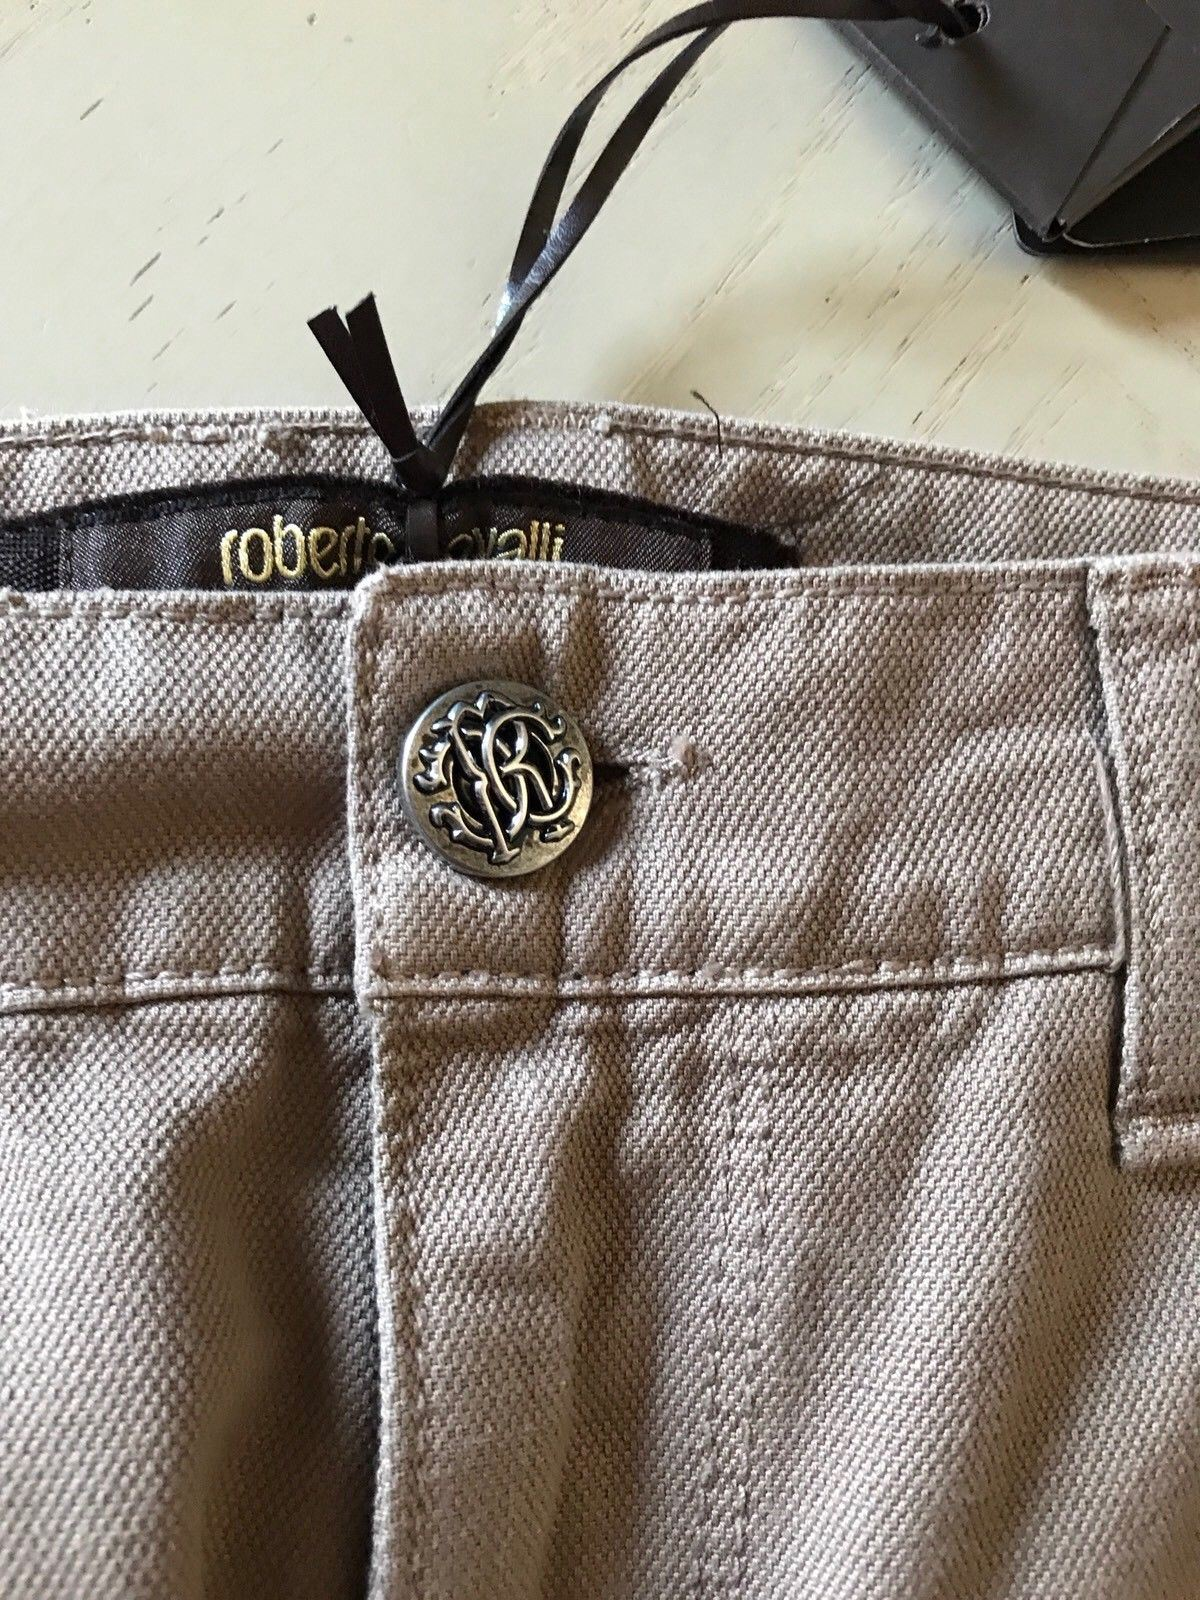 NWT  405 Roberto Cavalli Mens Pants Jeans LT Brown 32 US ( 46 Ita ) Italy f62d99be8